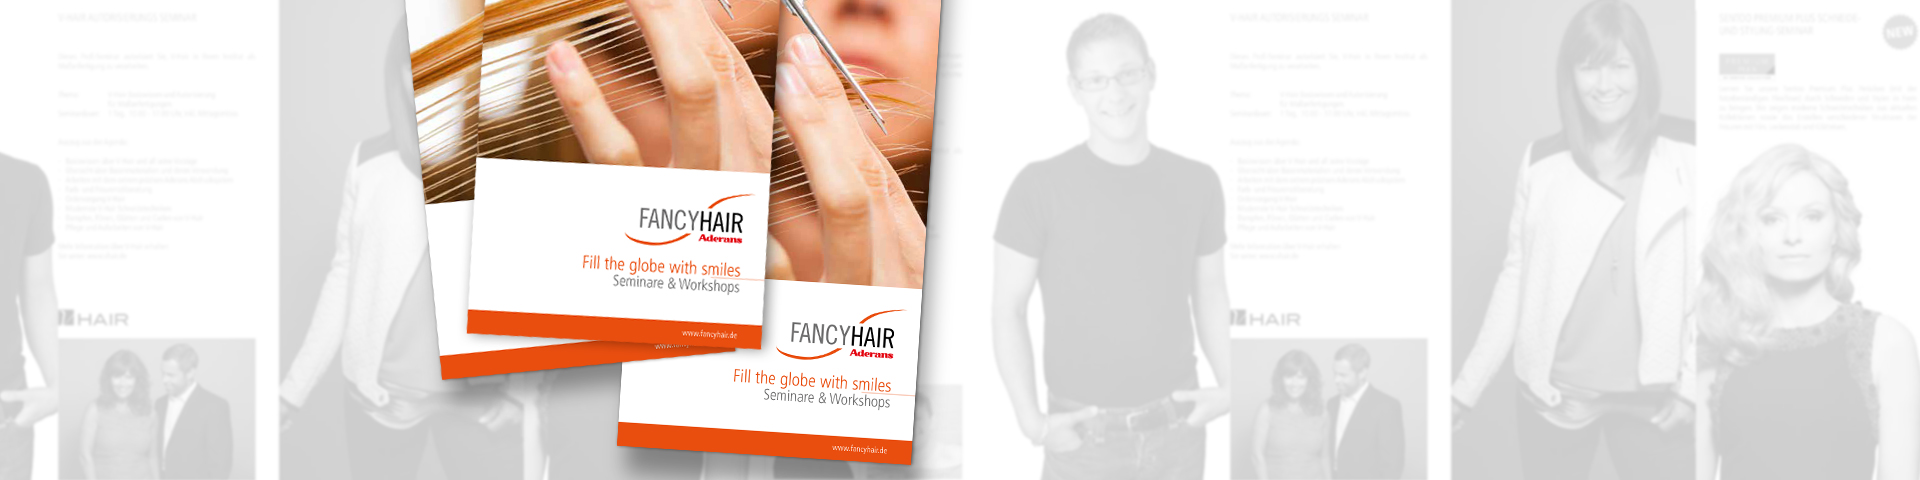 Fancyhair_Slider Schulungen